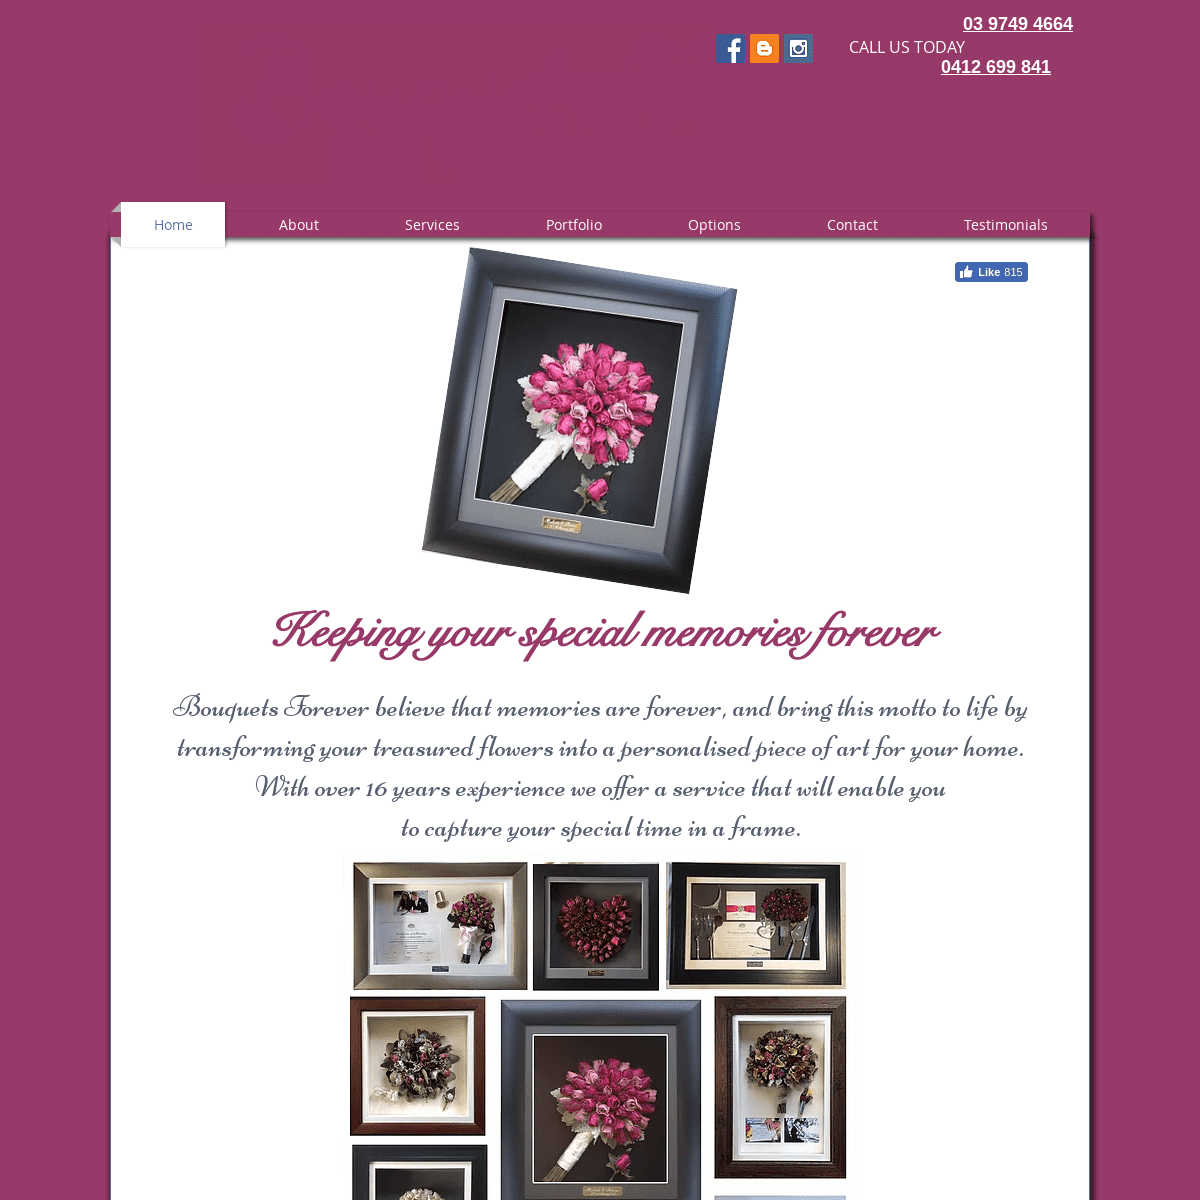 Bouquets Forever - Dried and framed floral arrangements